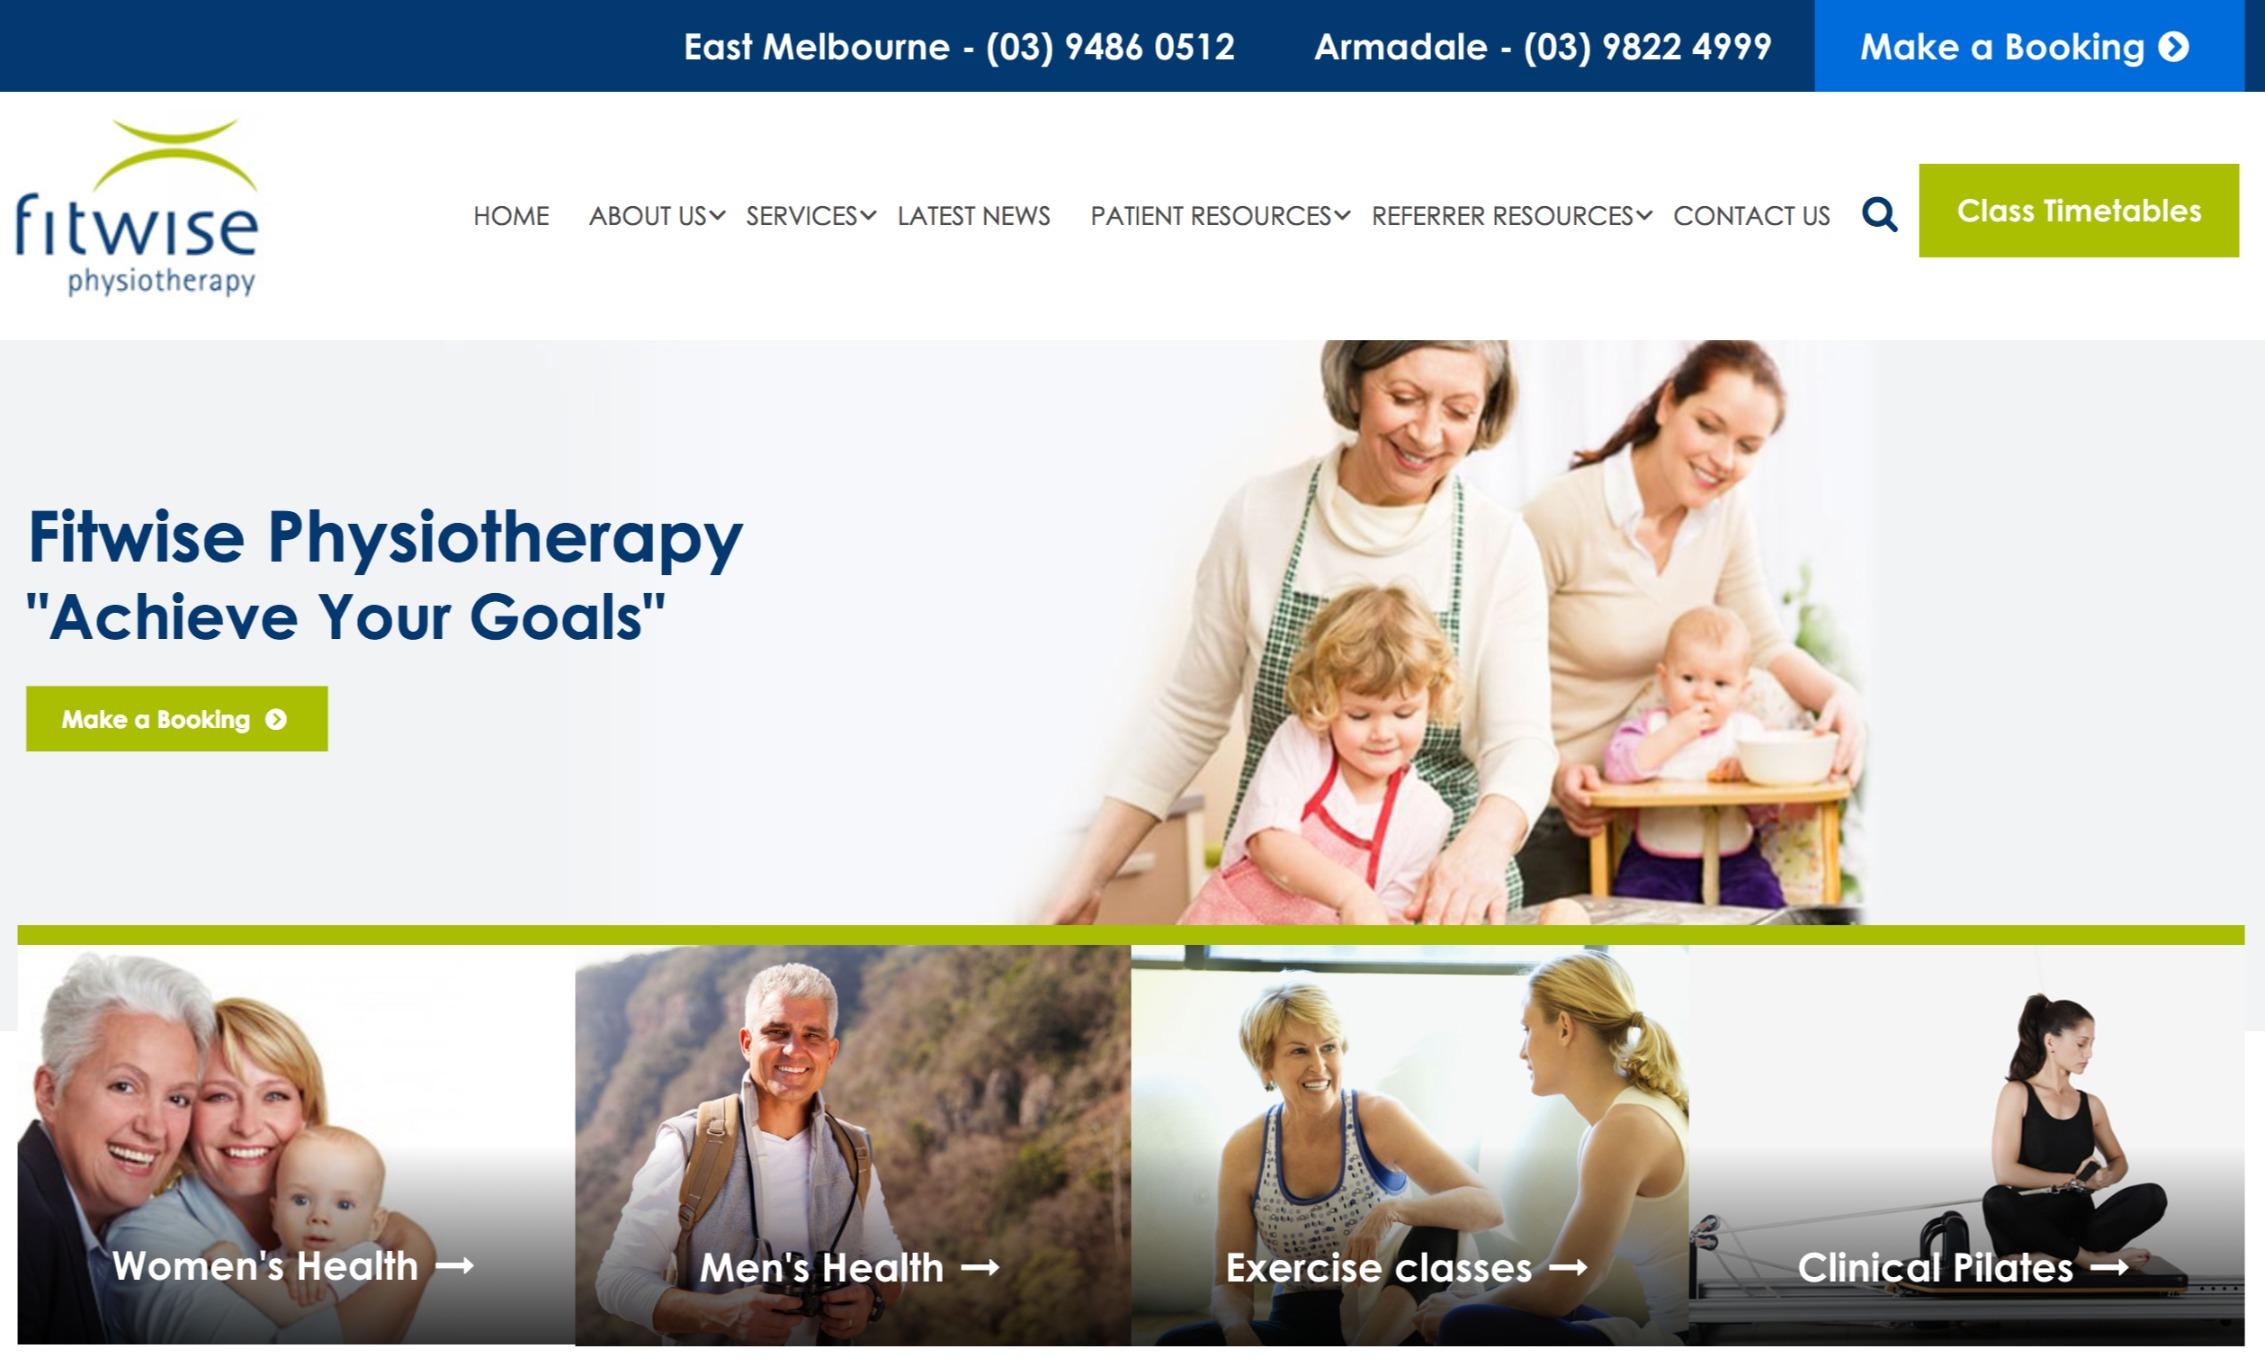 Fitwise Physiotherapy - best medical website design